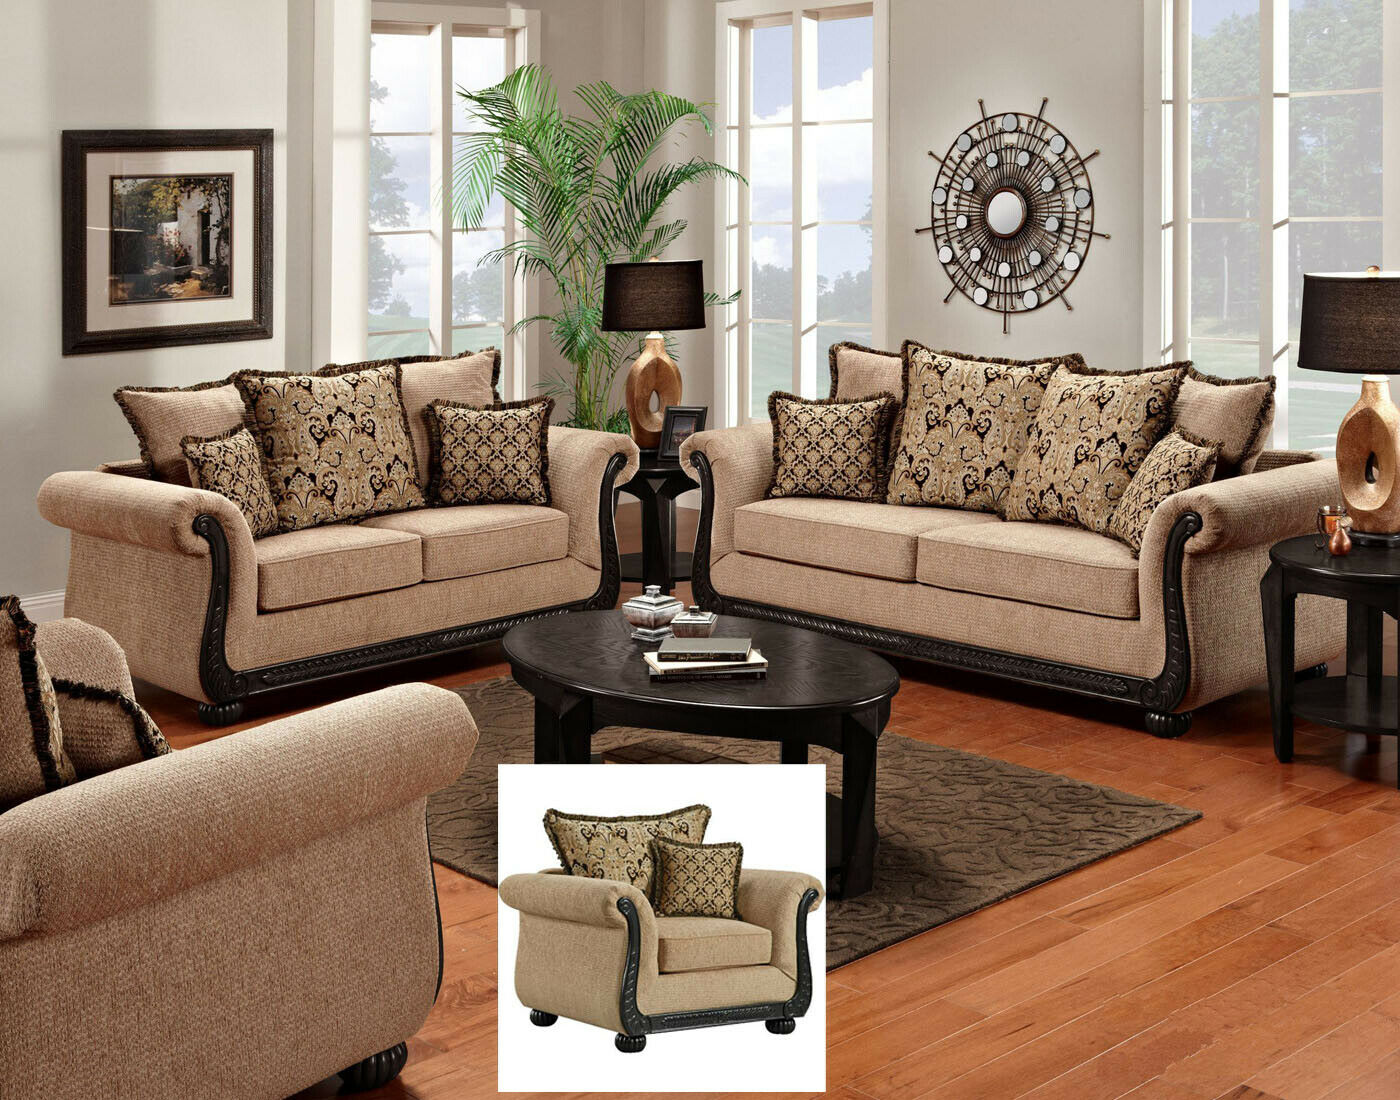 Delray traditional sofa loveseat chair 3pc living room furniture set chenille 1 of 1only 2 available